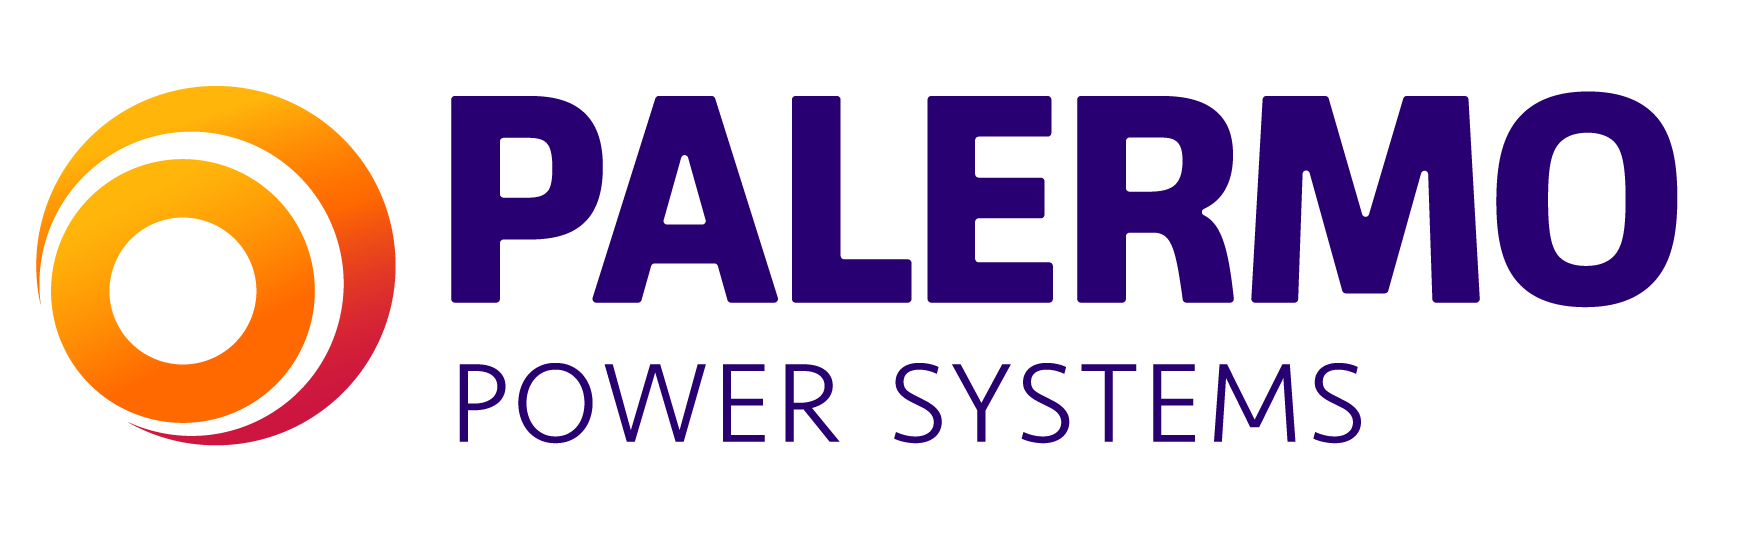 Palermo-Power-Systems_RGB_Horizontal.png